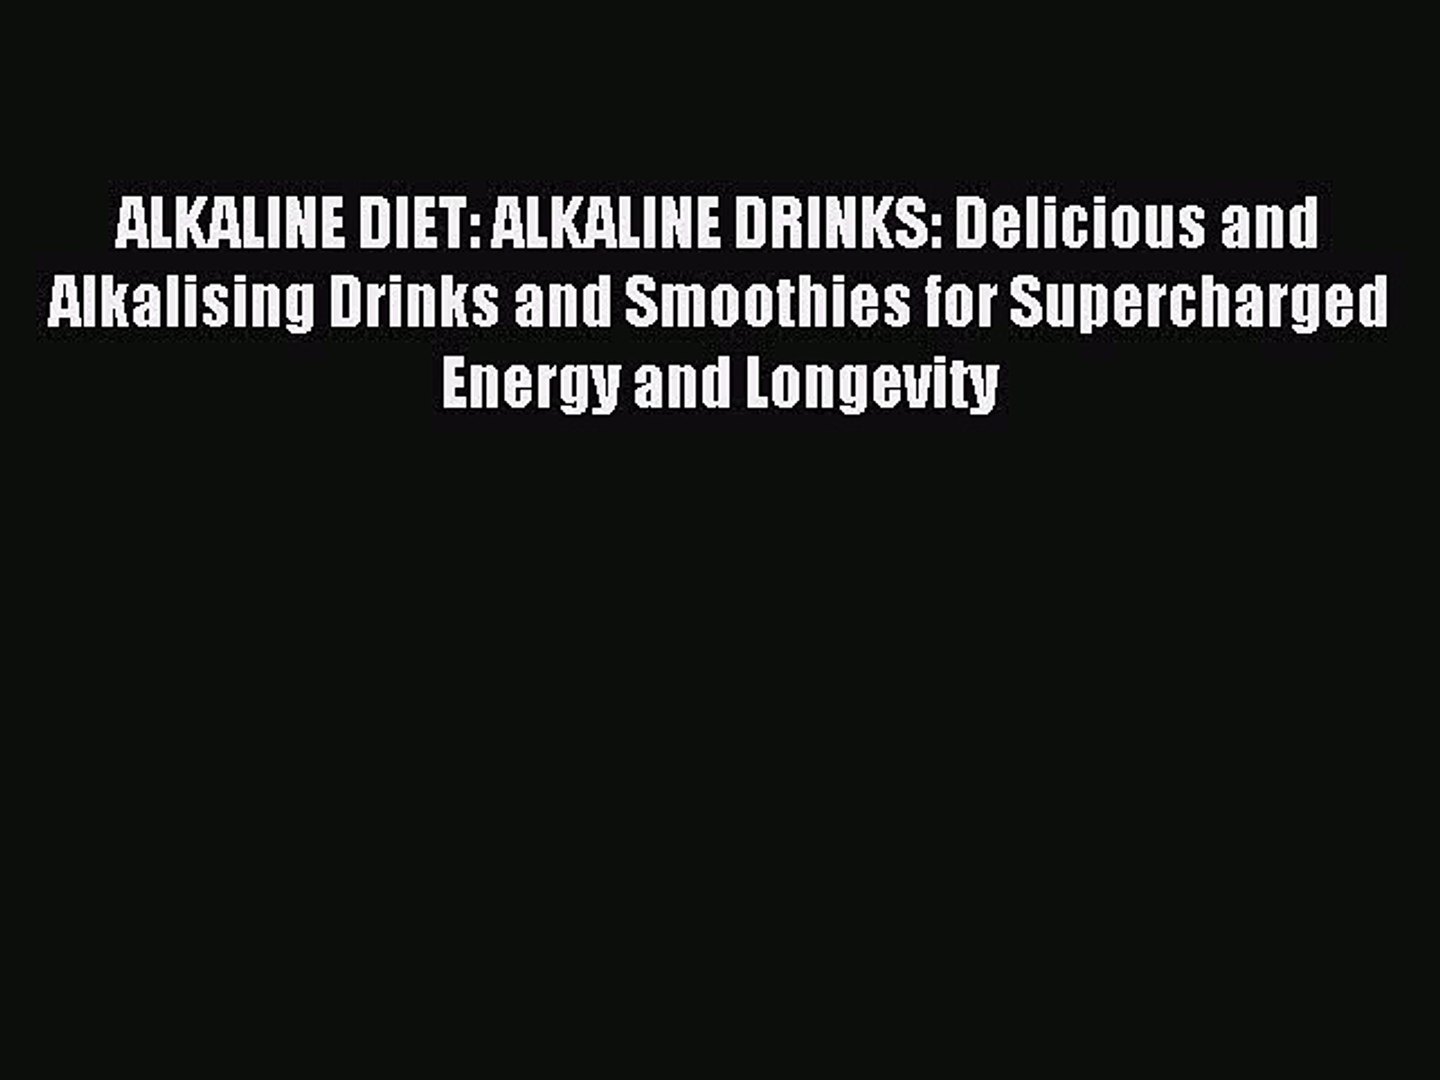 Read ALKALINE DIET: ALKALINE DRINKS: Delicious and Alkalising Drinks and Smoothies for Supercharged